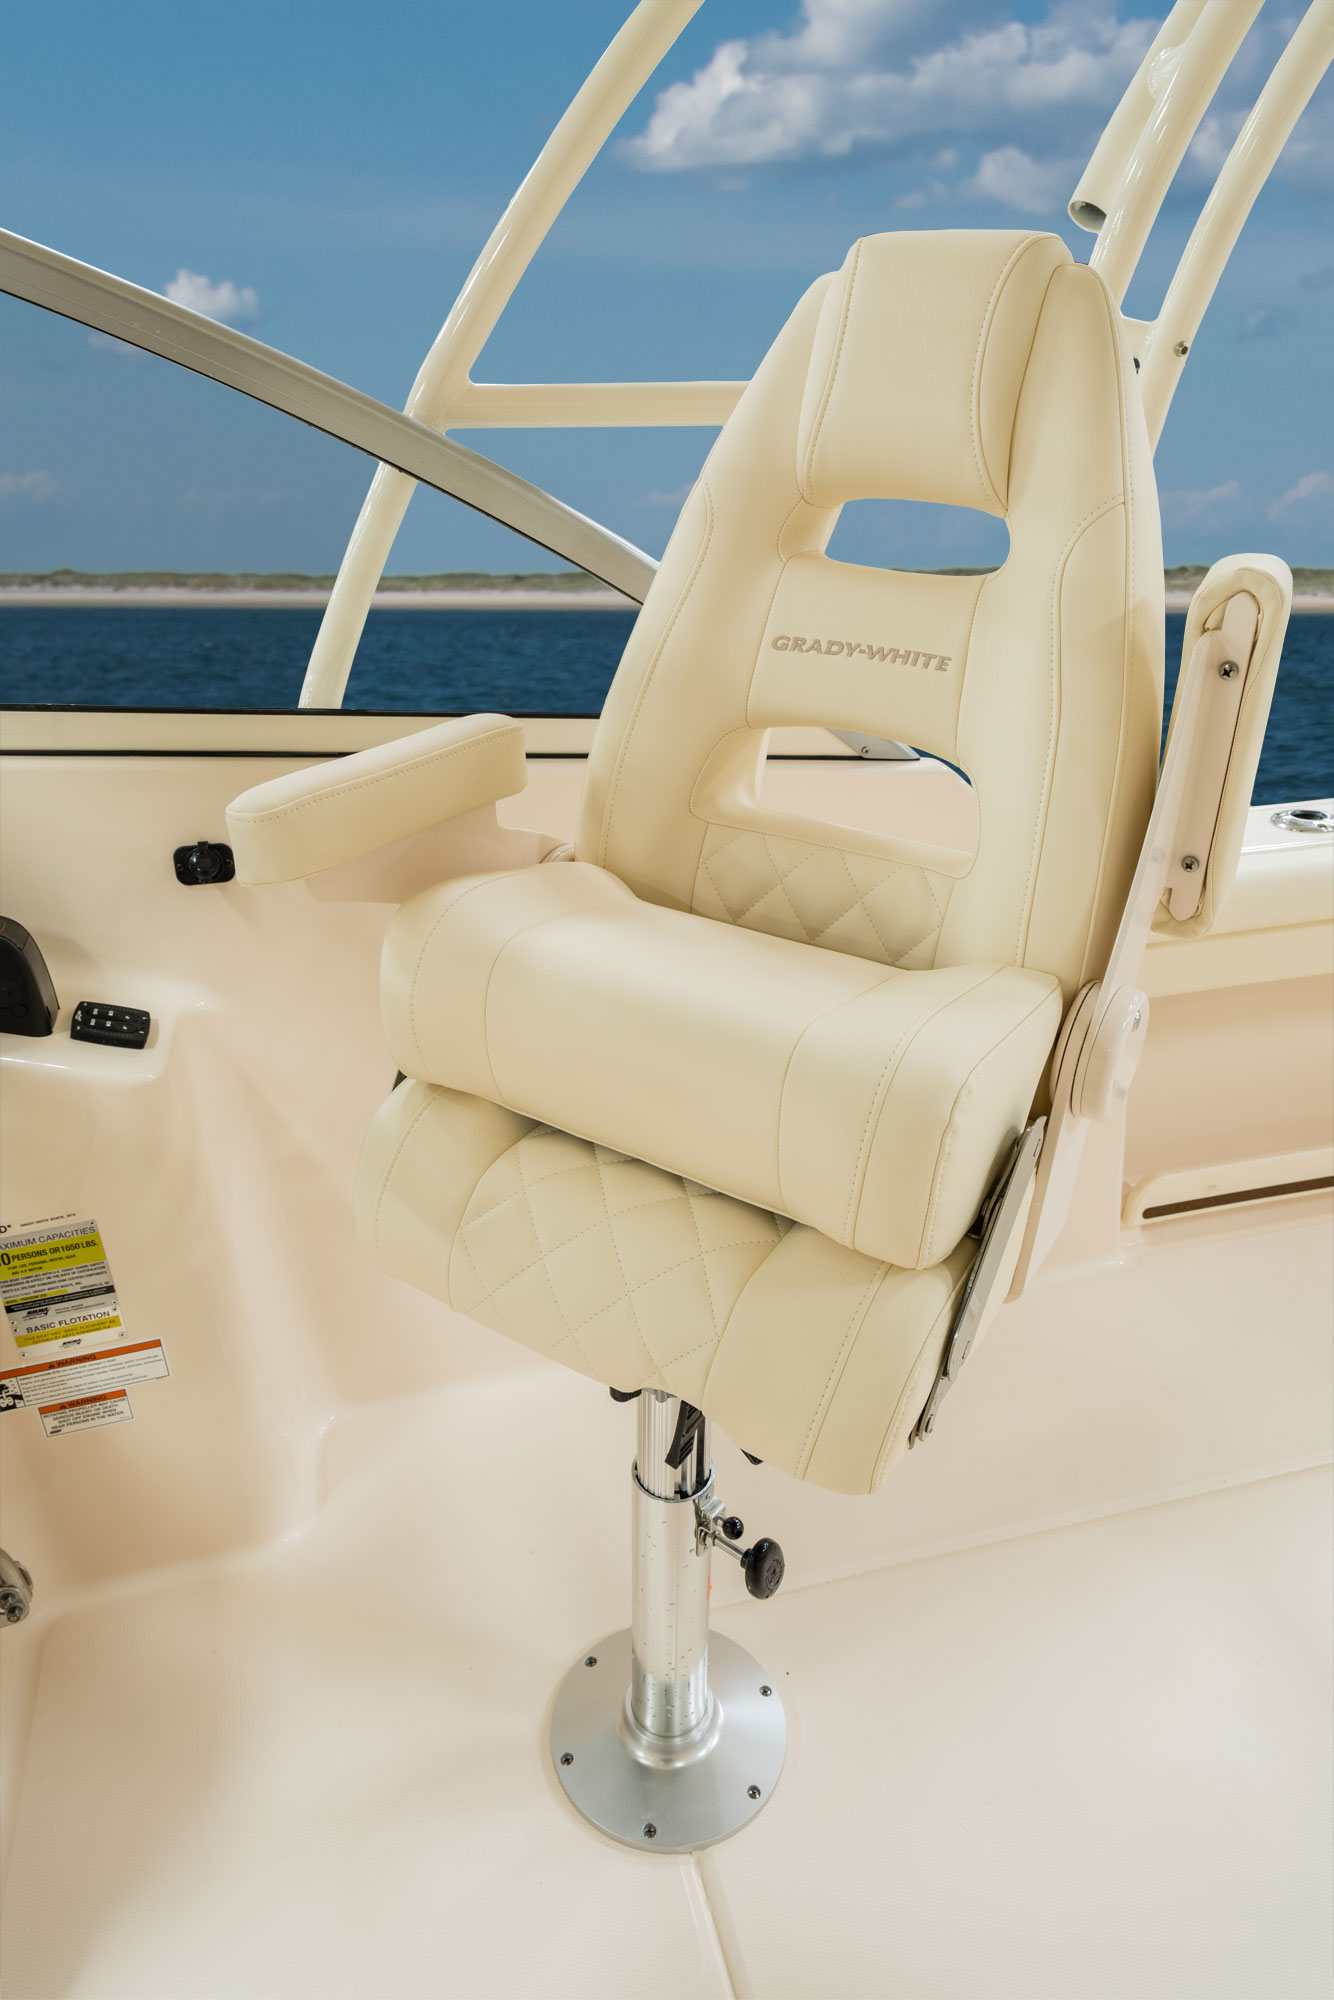 Grady-White Freedom 255 25-foot dual console Command Elite helm chair